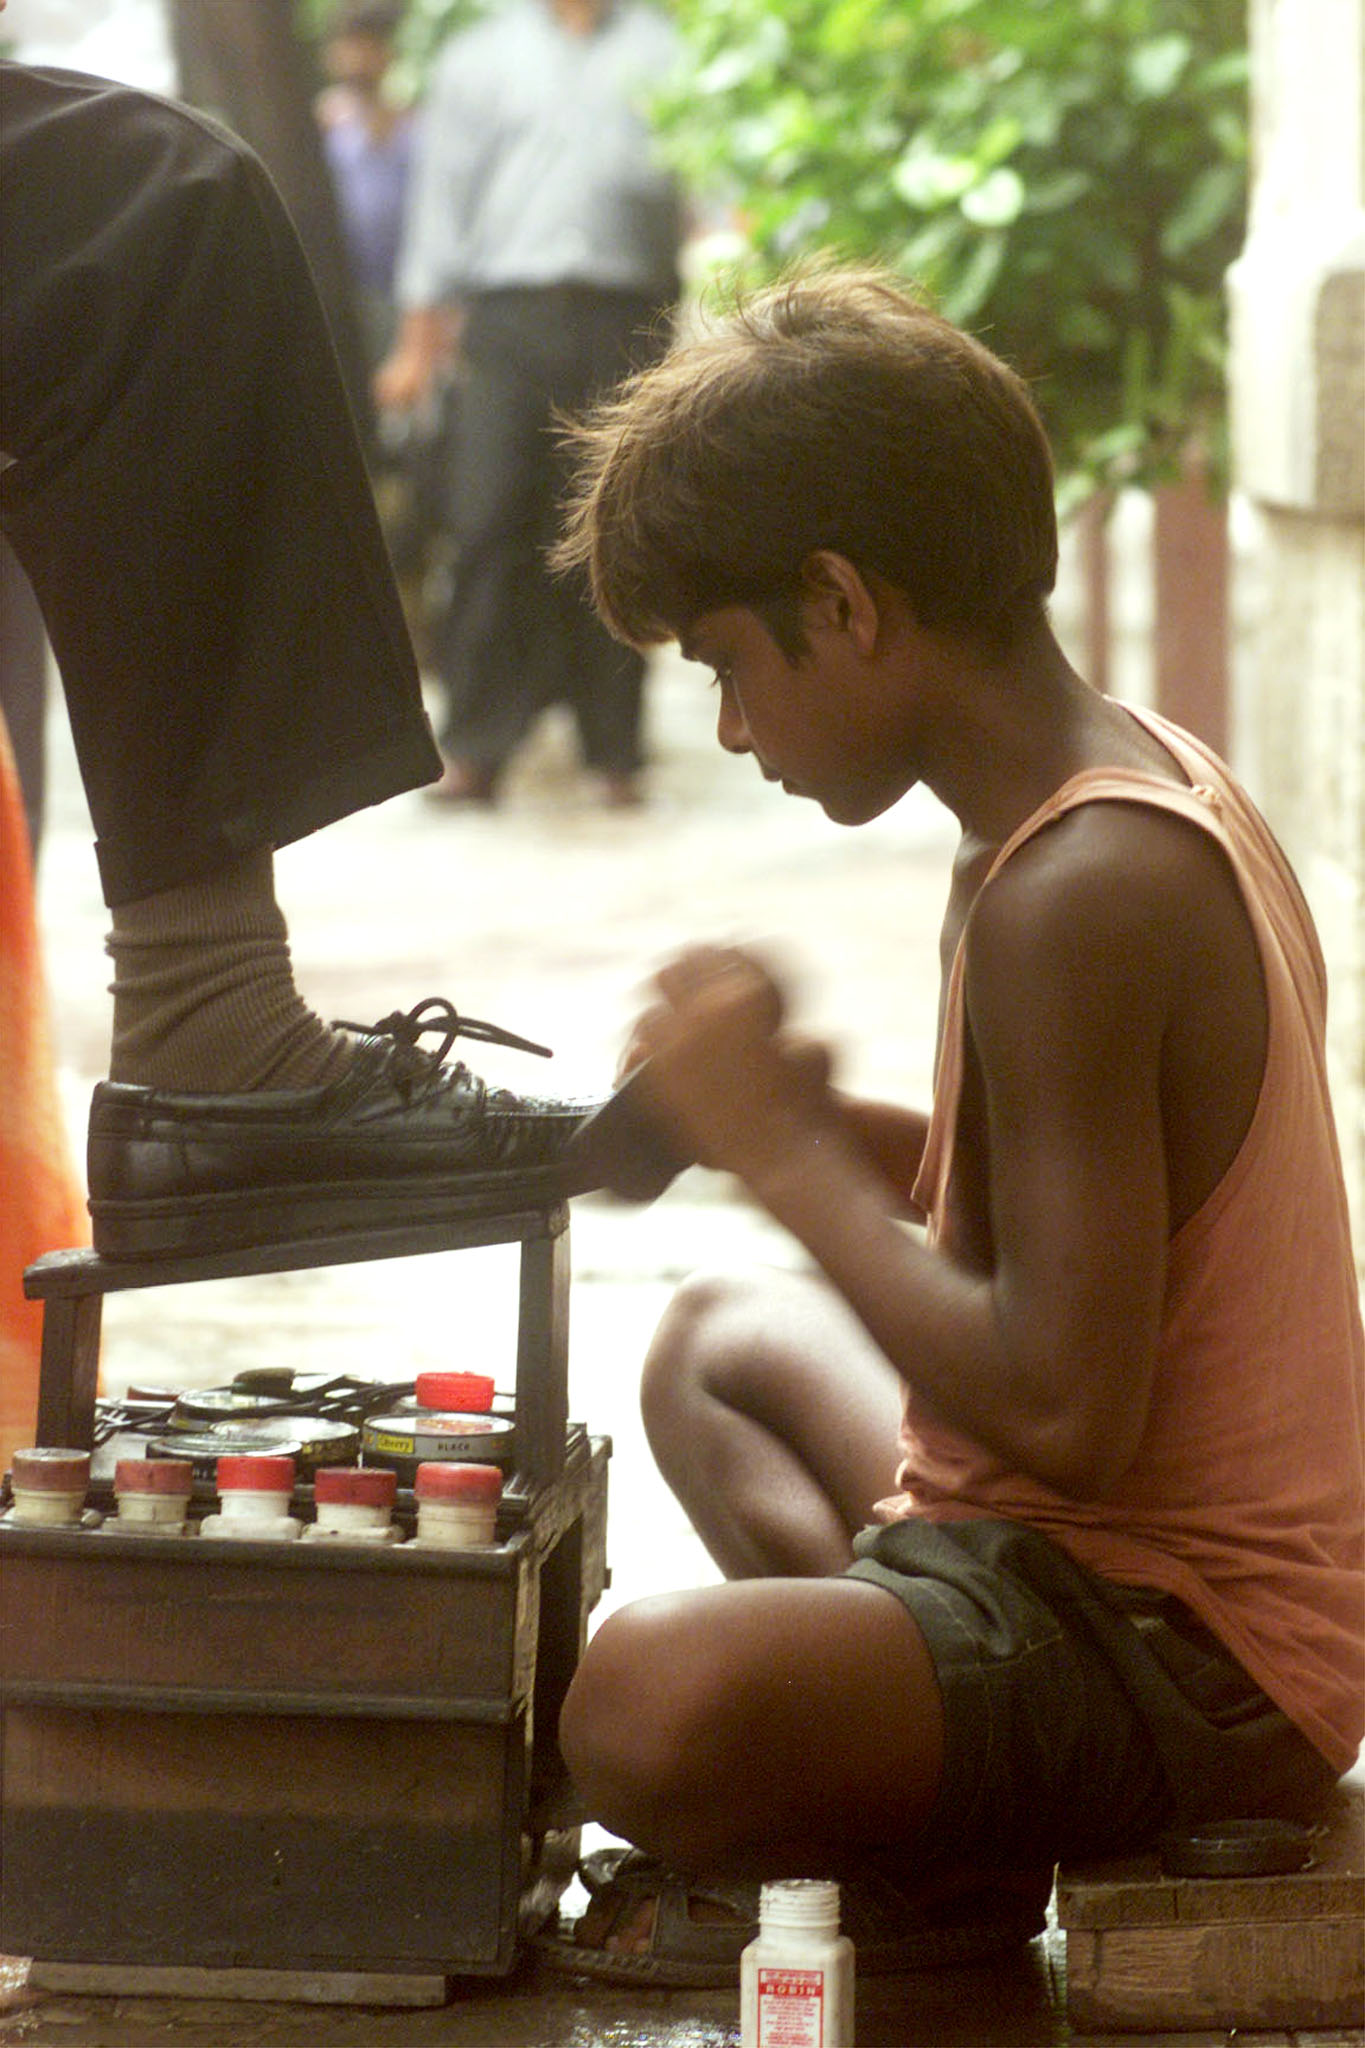 Student Mahesh Das polishes shoes on a pavement in the eastern Indian city Calcutta June 5. Mahesh supports his family and backs his education by earning 20 to 30 rupees a day which is less than a dollar. An estimated 20 percent of Calcutta's 12 milion people live in dire poverty. JS/DL - RTR4ZDS